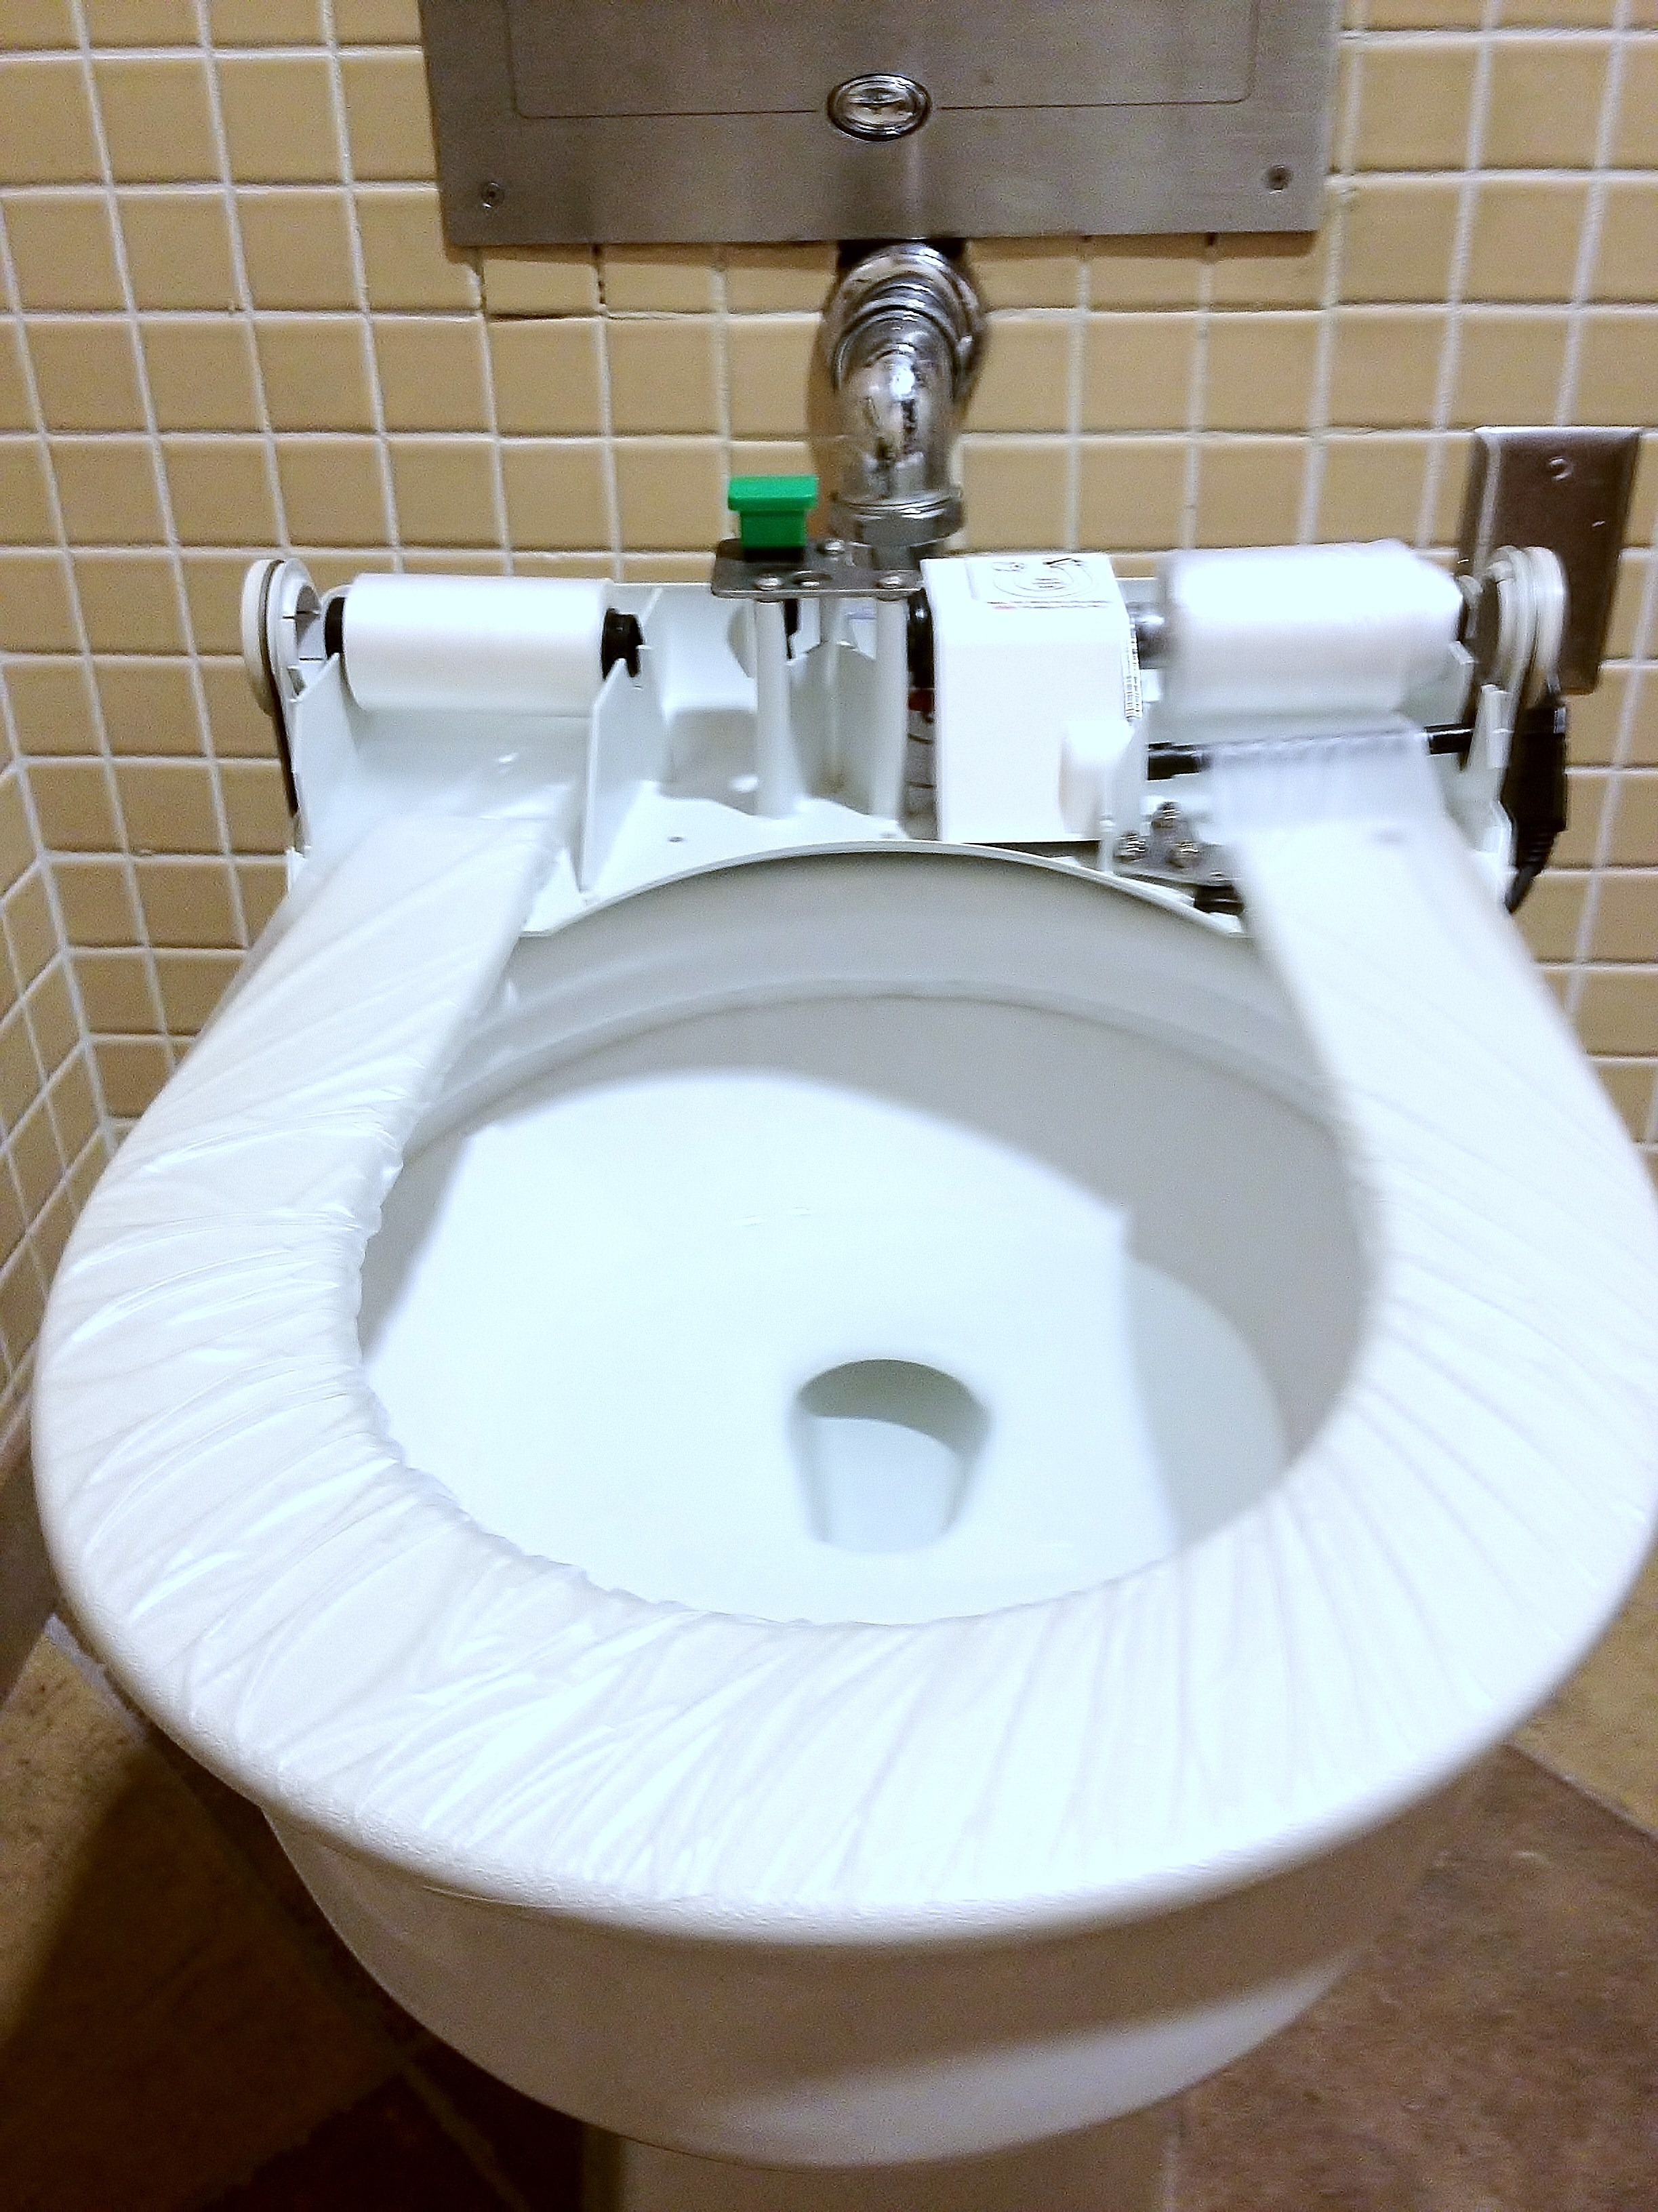 Sanitary Toilet Seat Cover – Brillseat Automatic Seat Covers